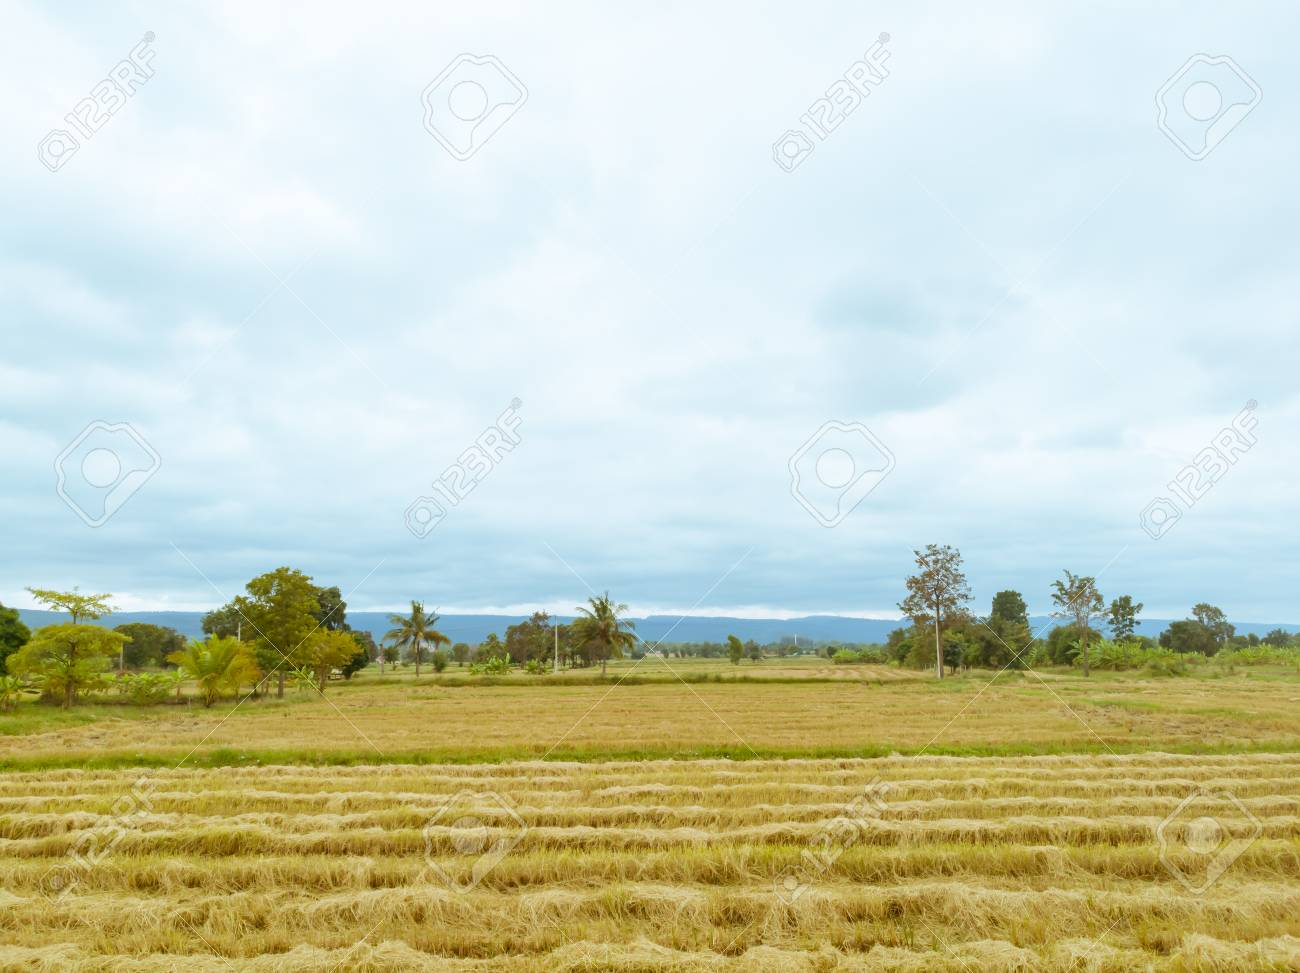 Rice paddy field after harvest season in Thailand against cloudy blue sky - 106236404